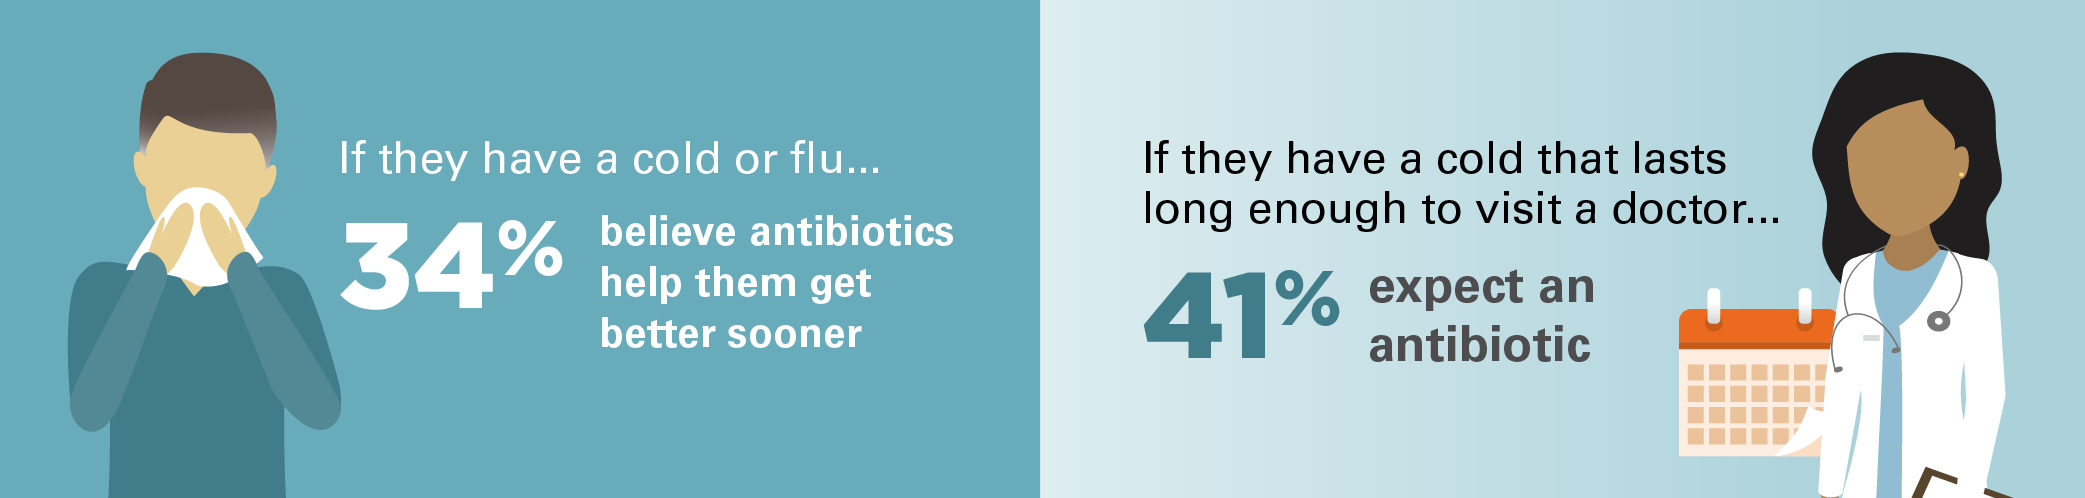 Thirty-four percent believe antibiotics help them get better sooner if they have a cold or flu. Forty-one percent expect an antibiotic if they have a cold that lasts long enough to visit a doctor.